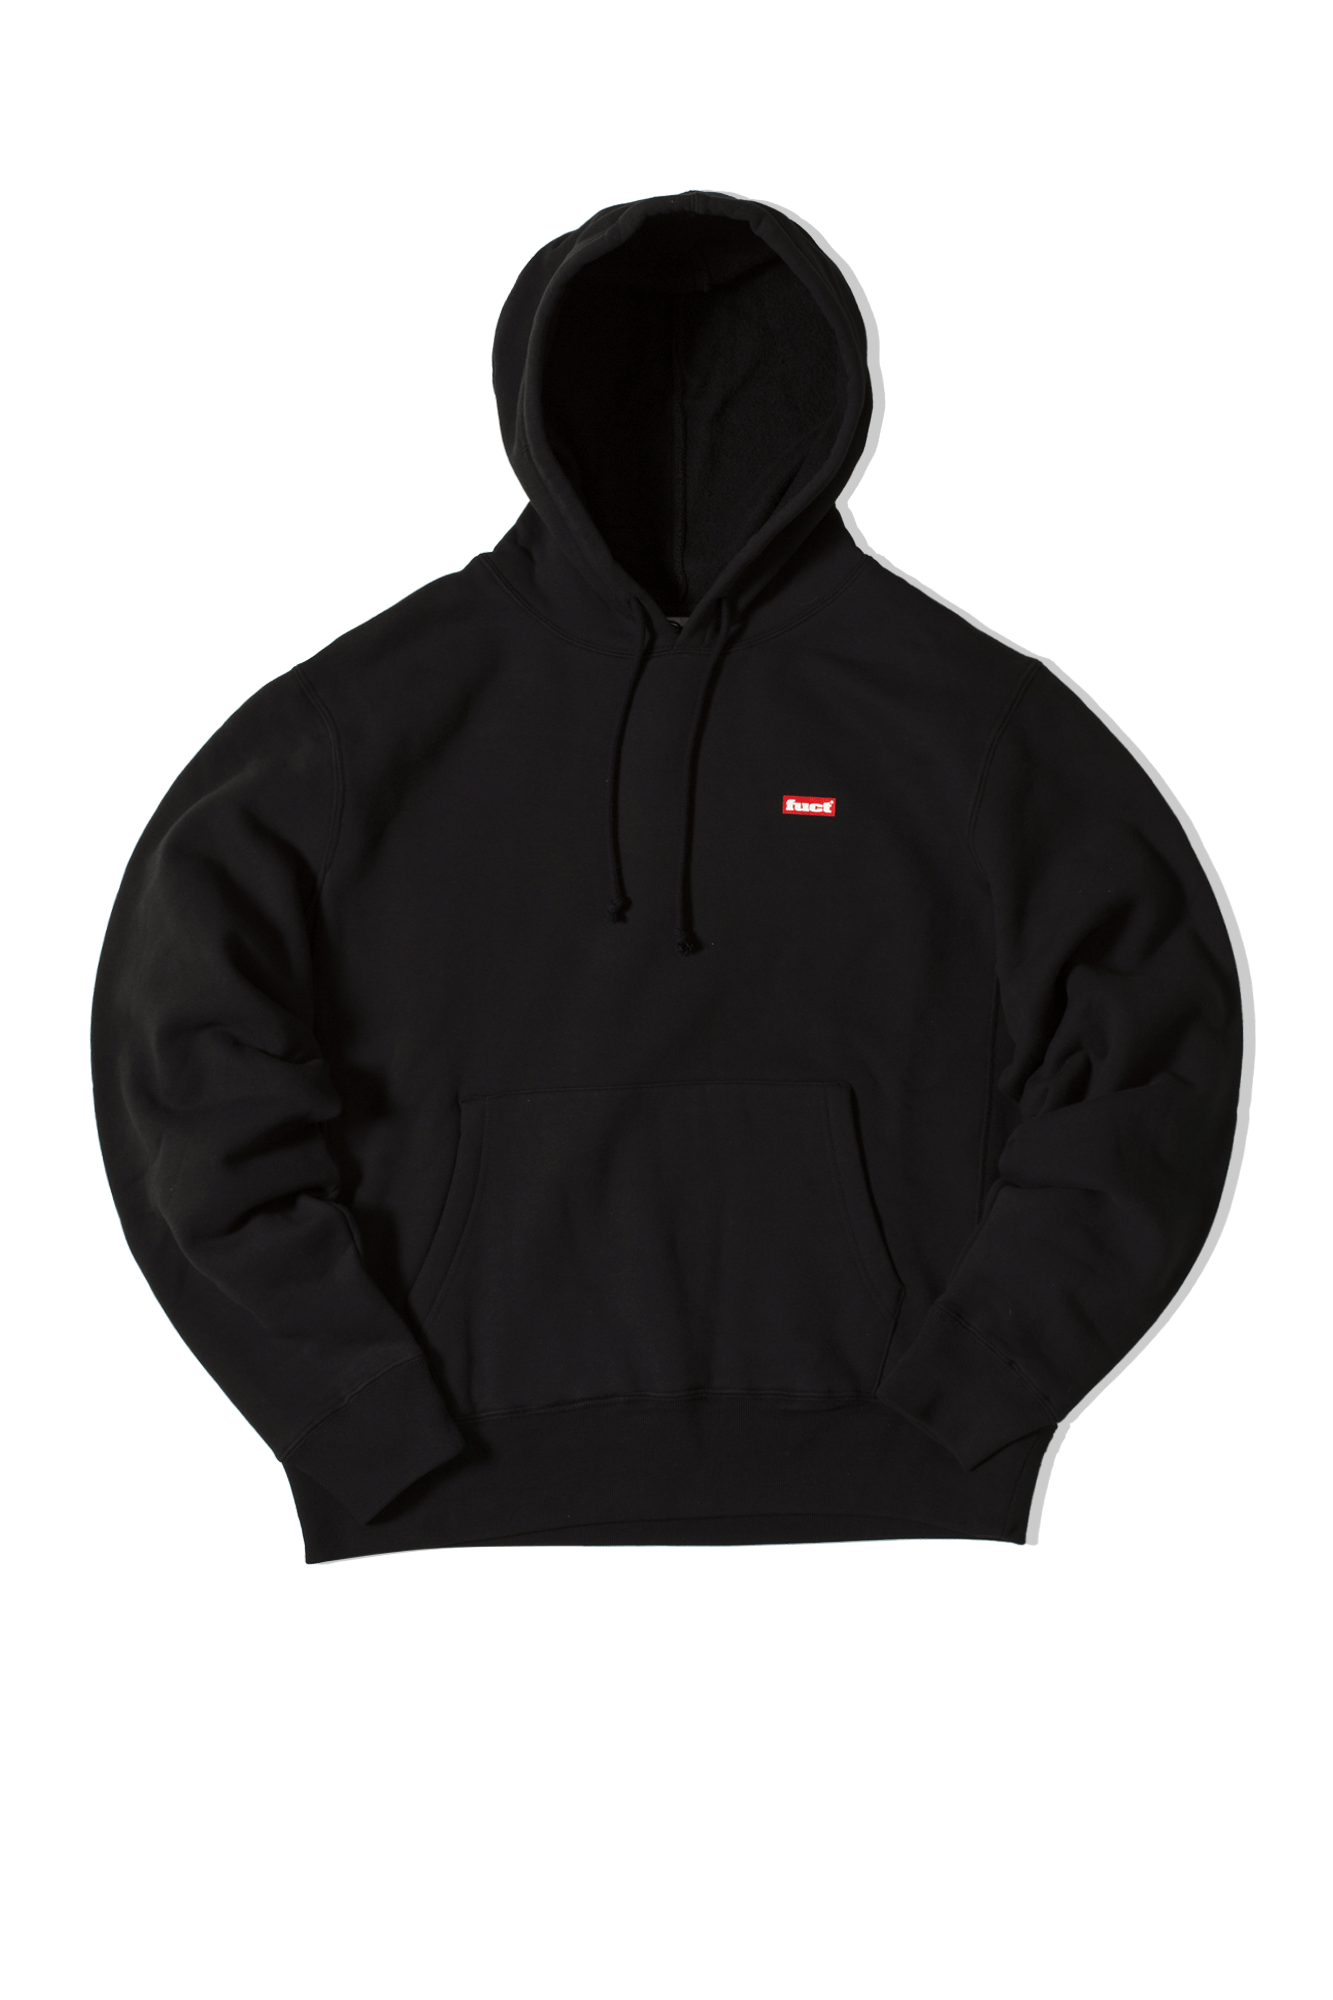 Fuct Felpe AMEN HOODY Nero FFA19006#000#BLK#M - One Block Down